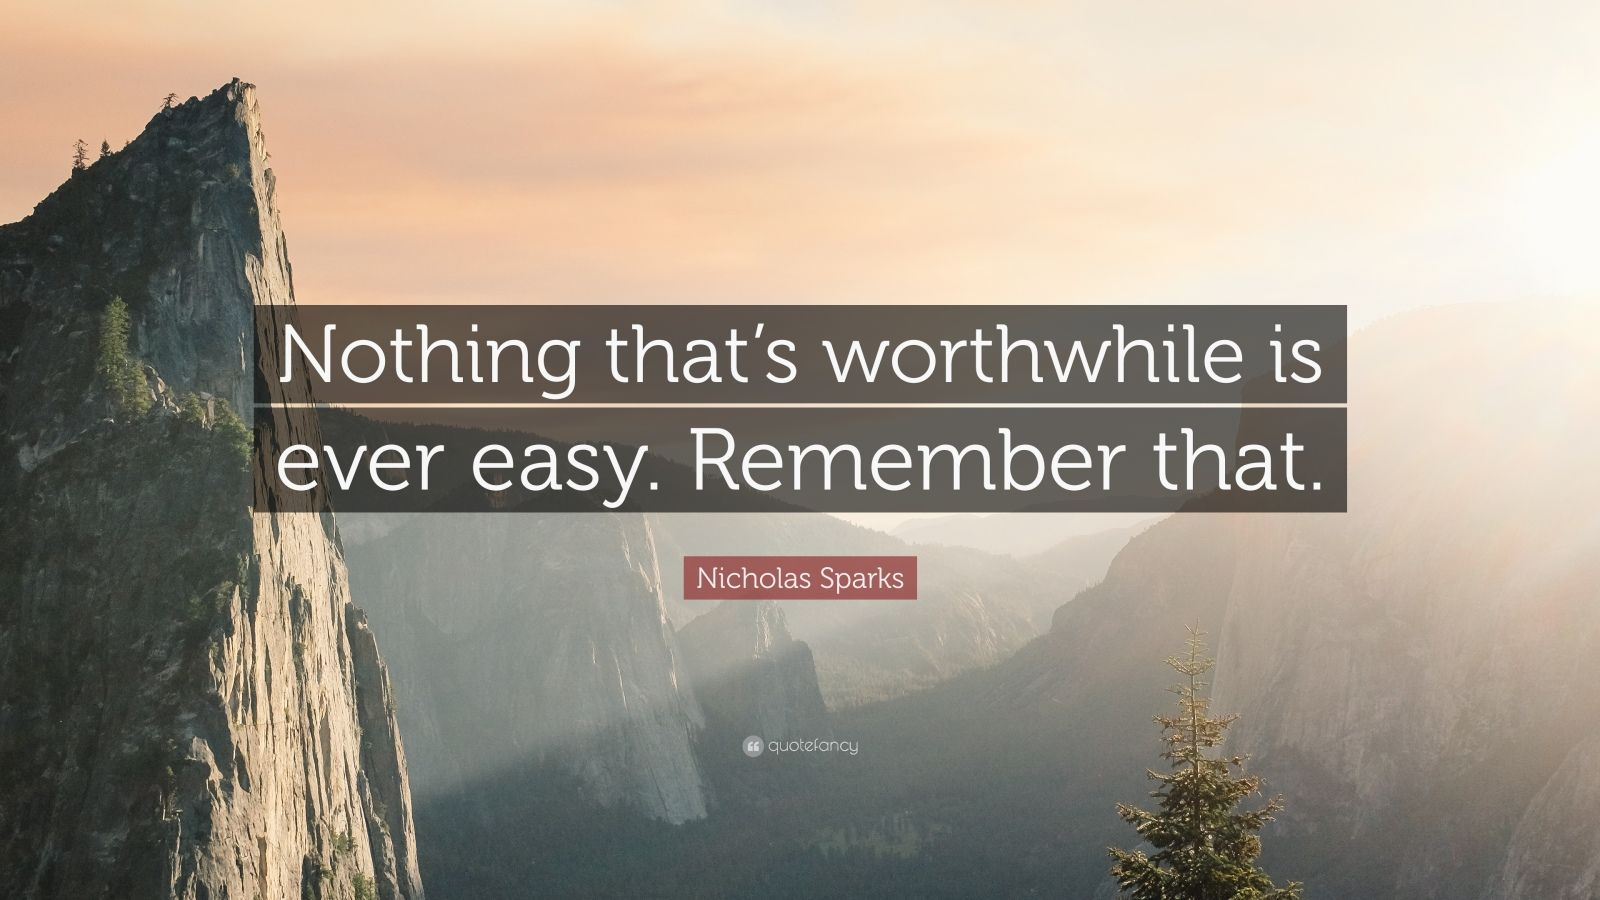 William Shakespeare Love Quotes Wallpaper Nicholas Sparks Quote Nothing That S Worthwhile Is Ever